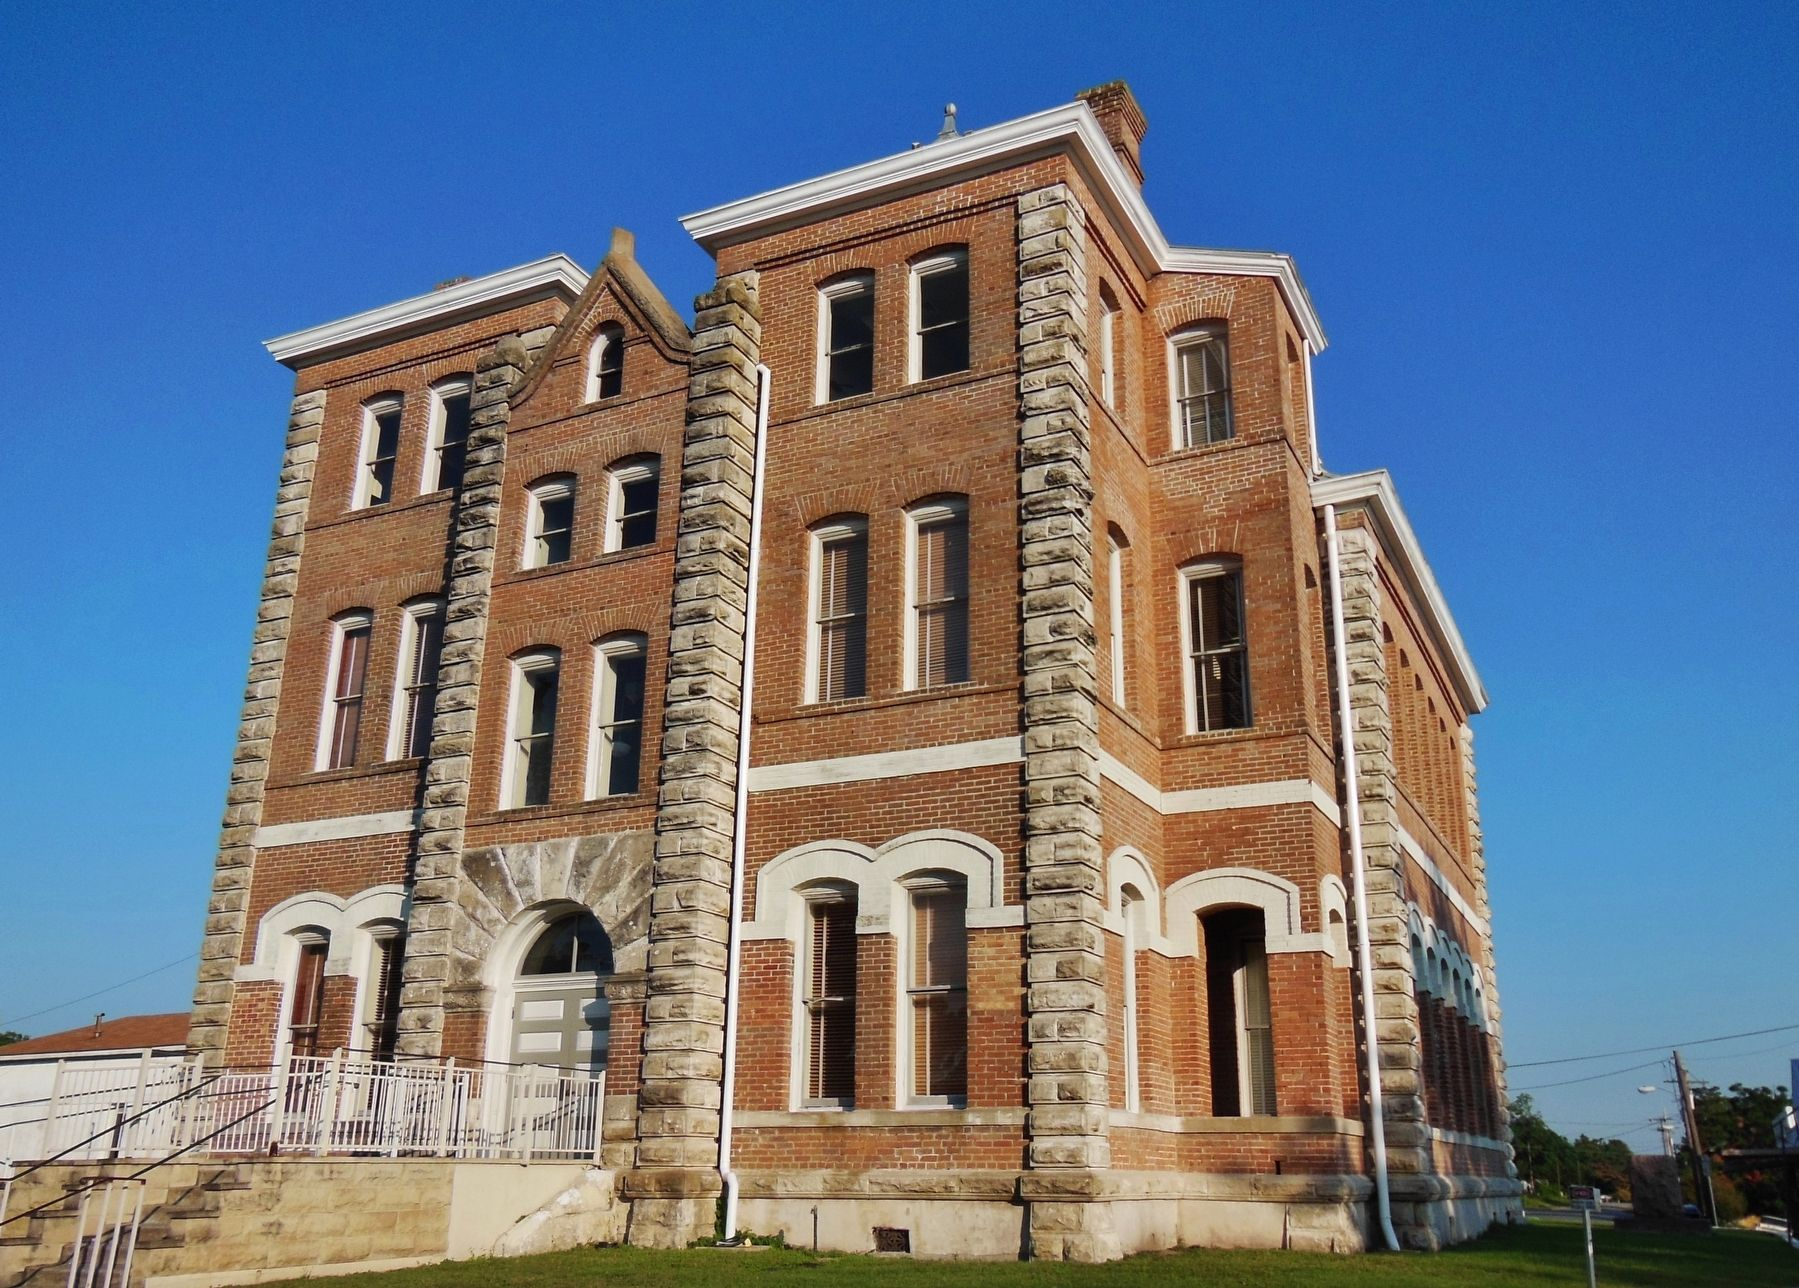 Grimes County Courthouse (<i>northwest corner</i>) image. Click for full size.